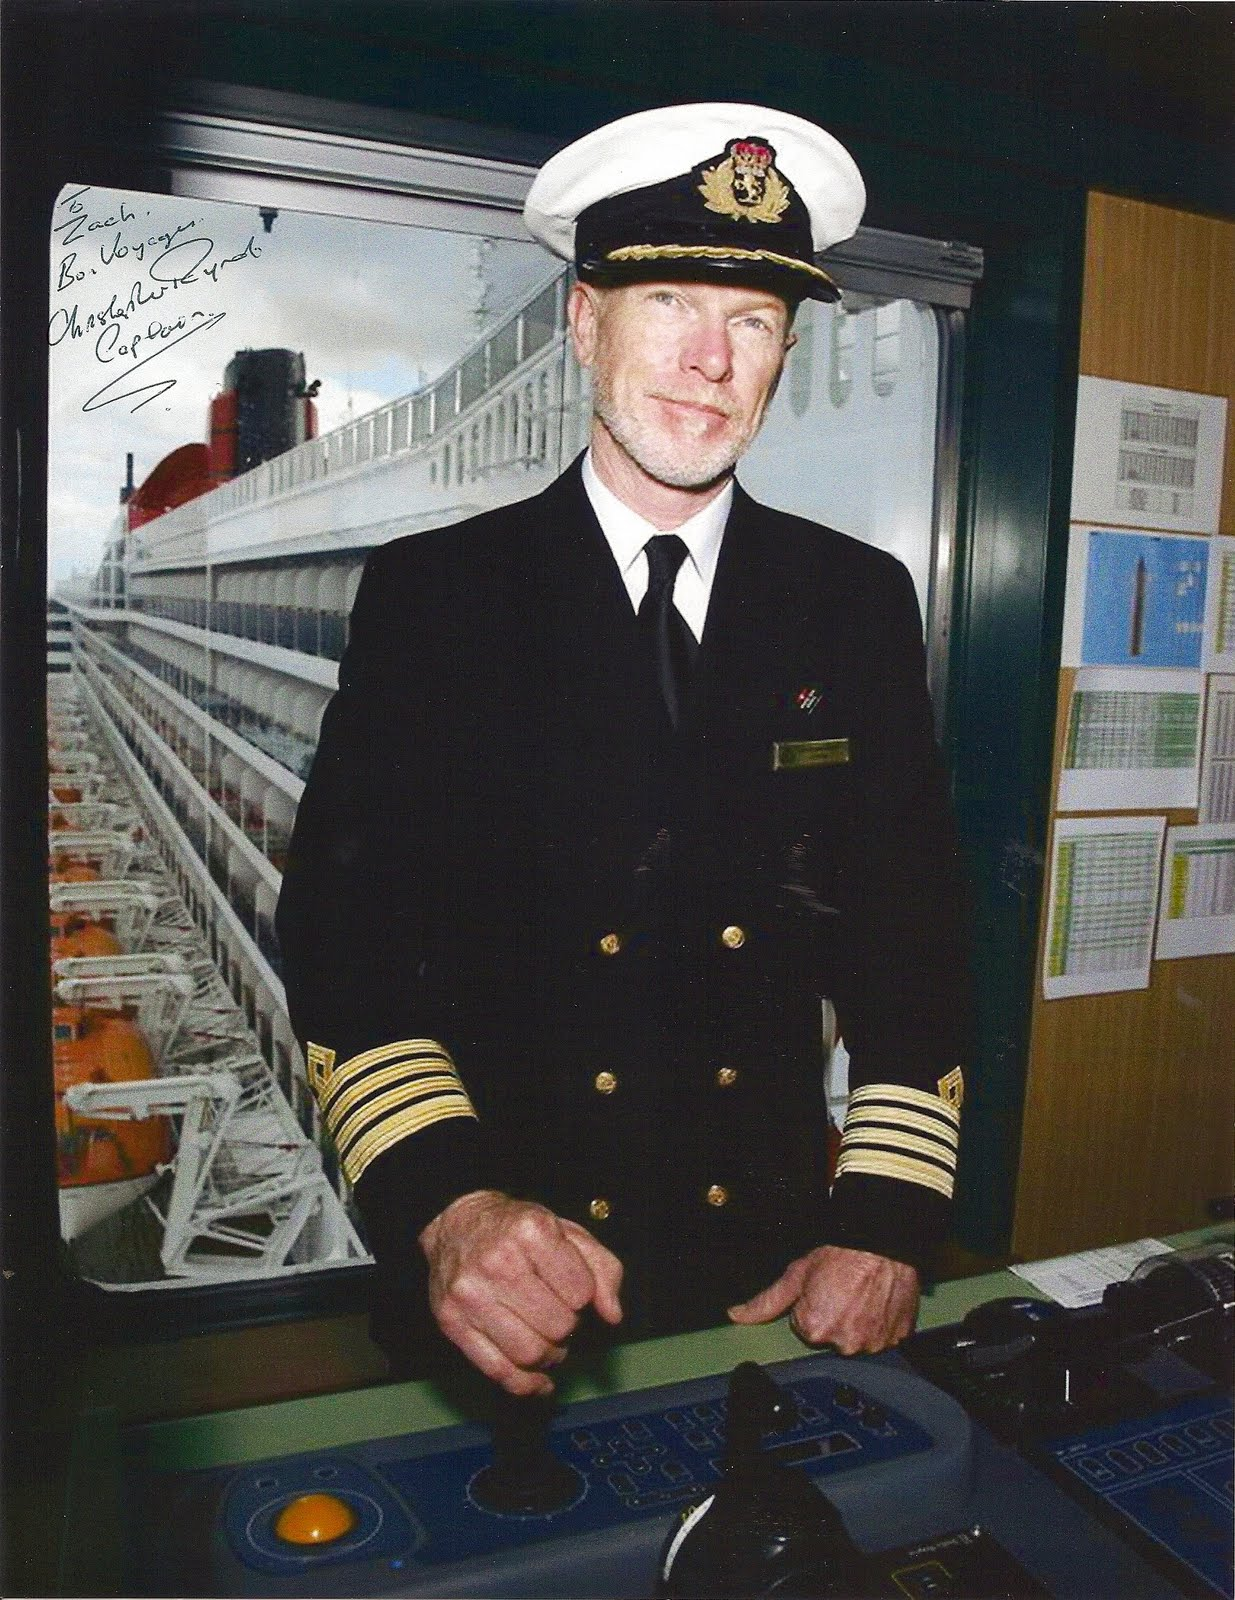 Queen Mary Engine Room: The Captain's Table: Cunard's Newest Commodore